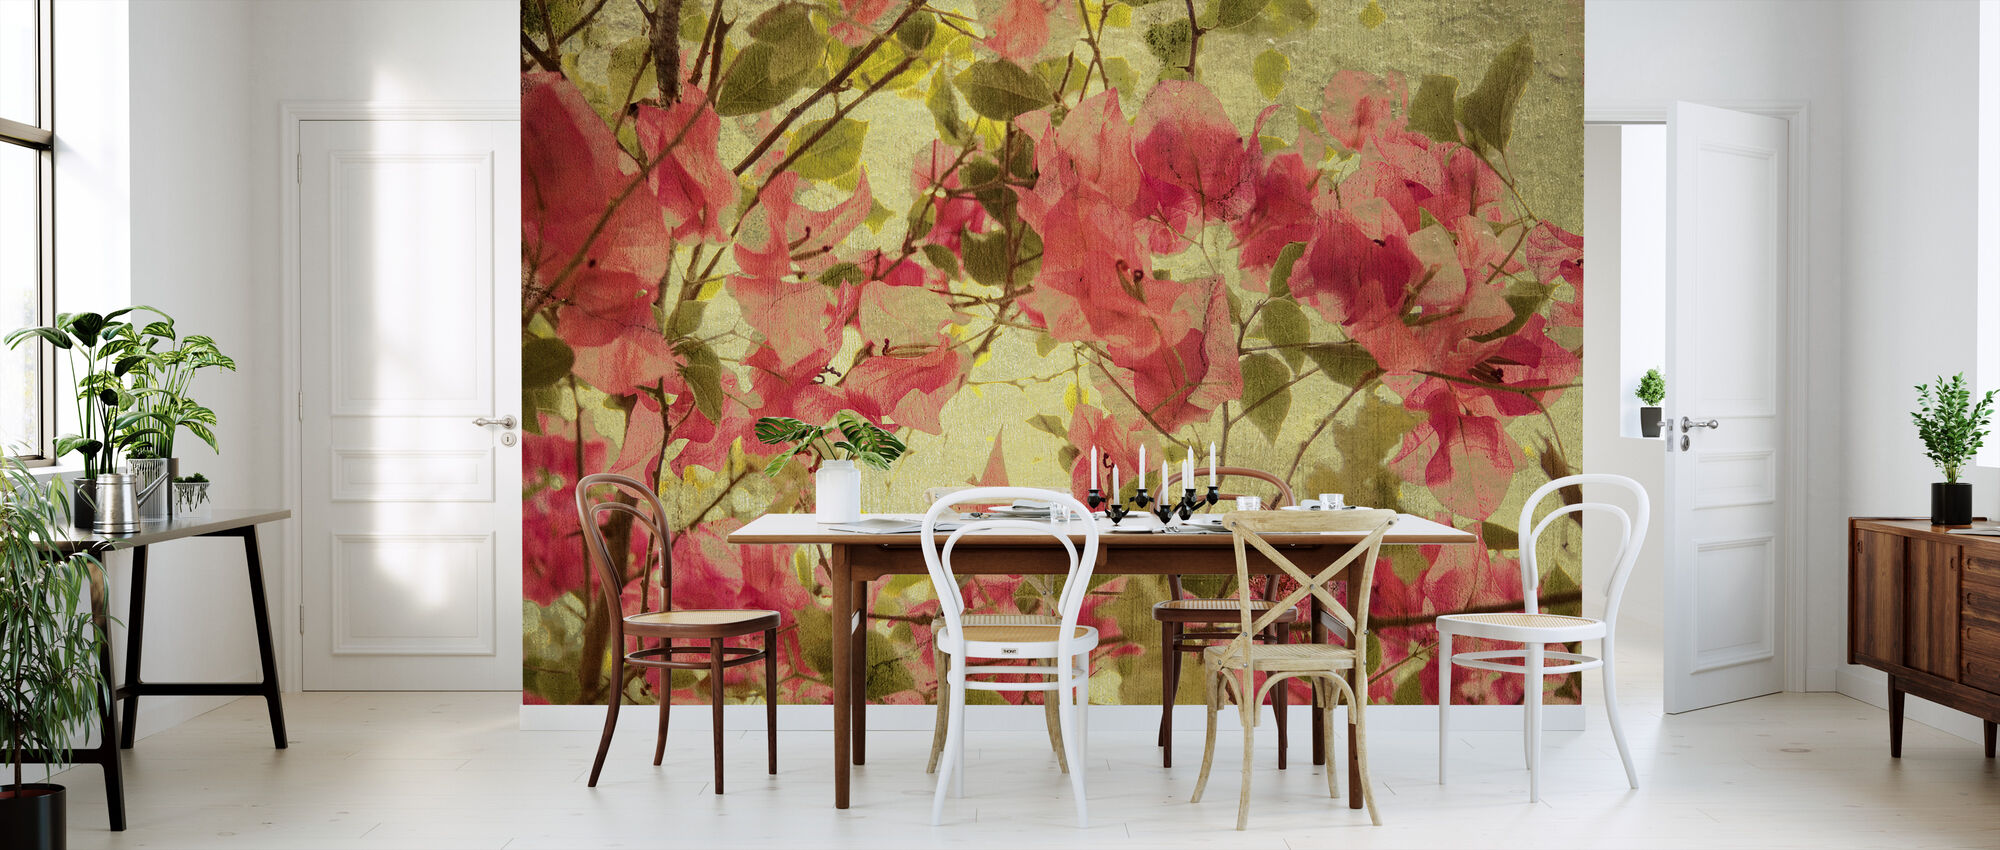 Bougainvillea - Wallpaper - Kitchen